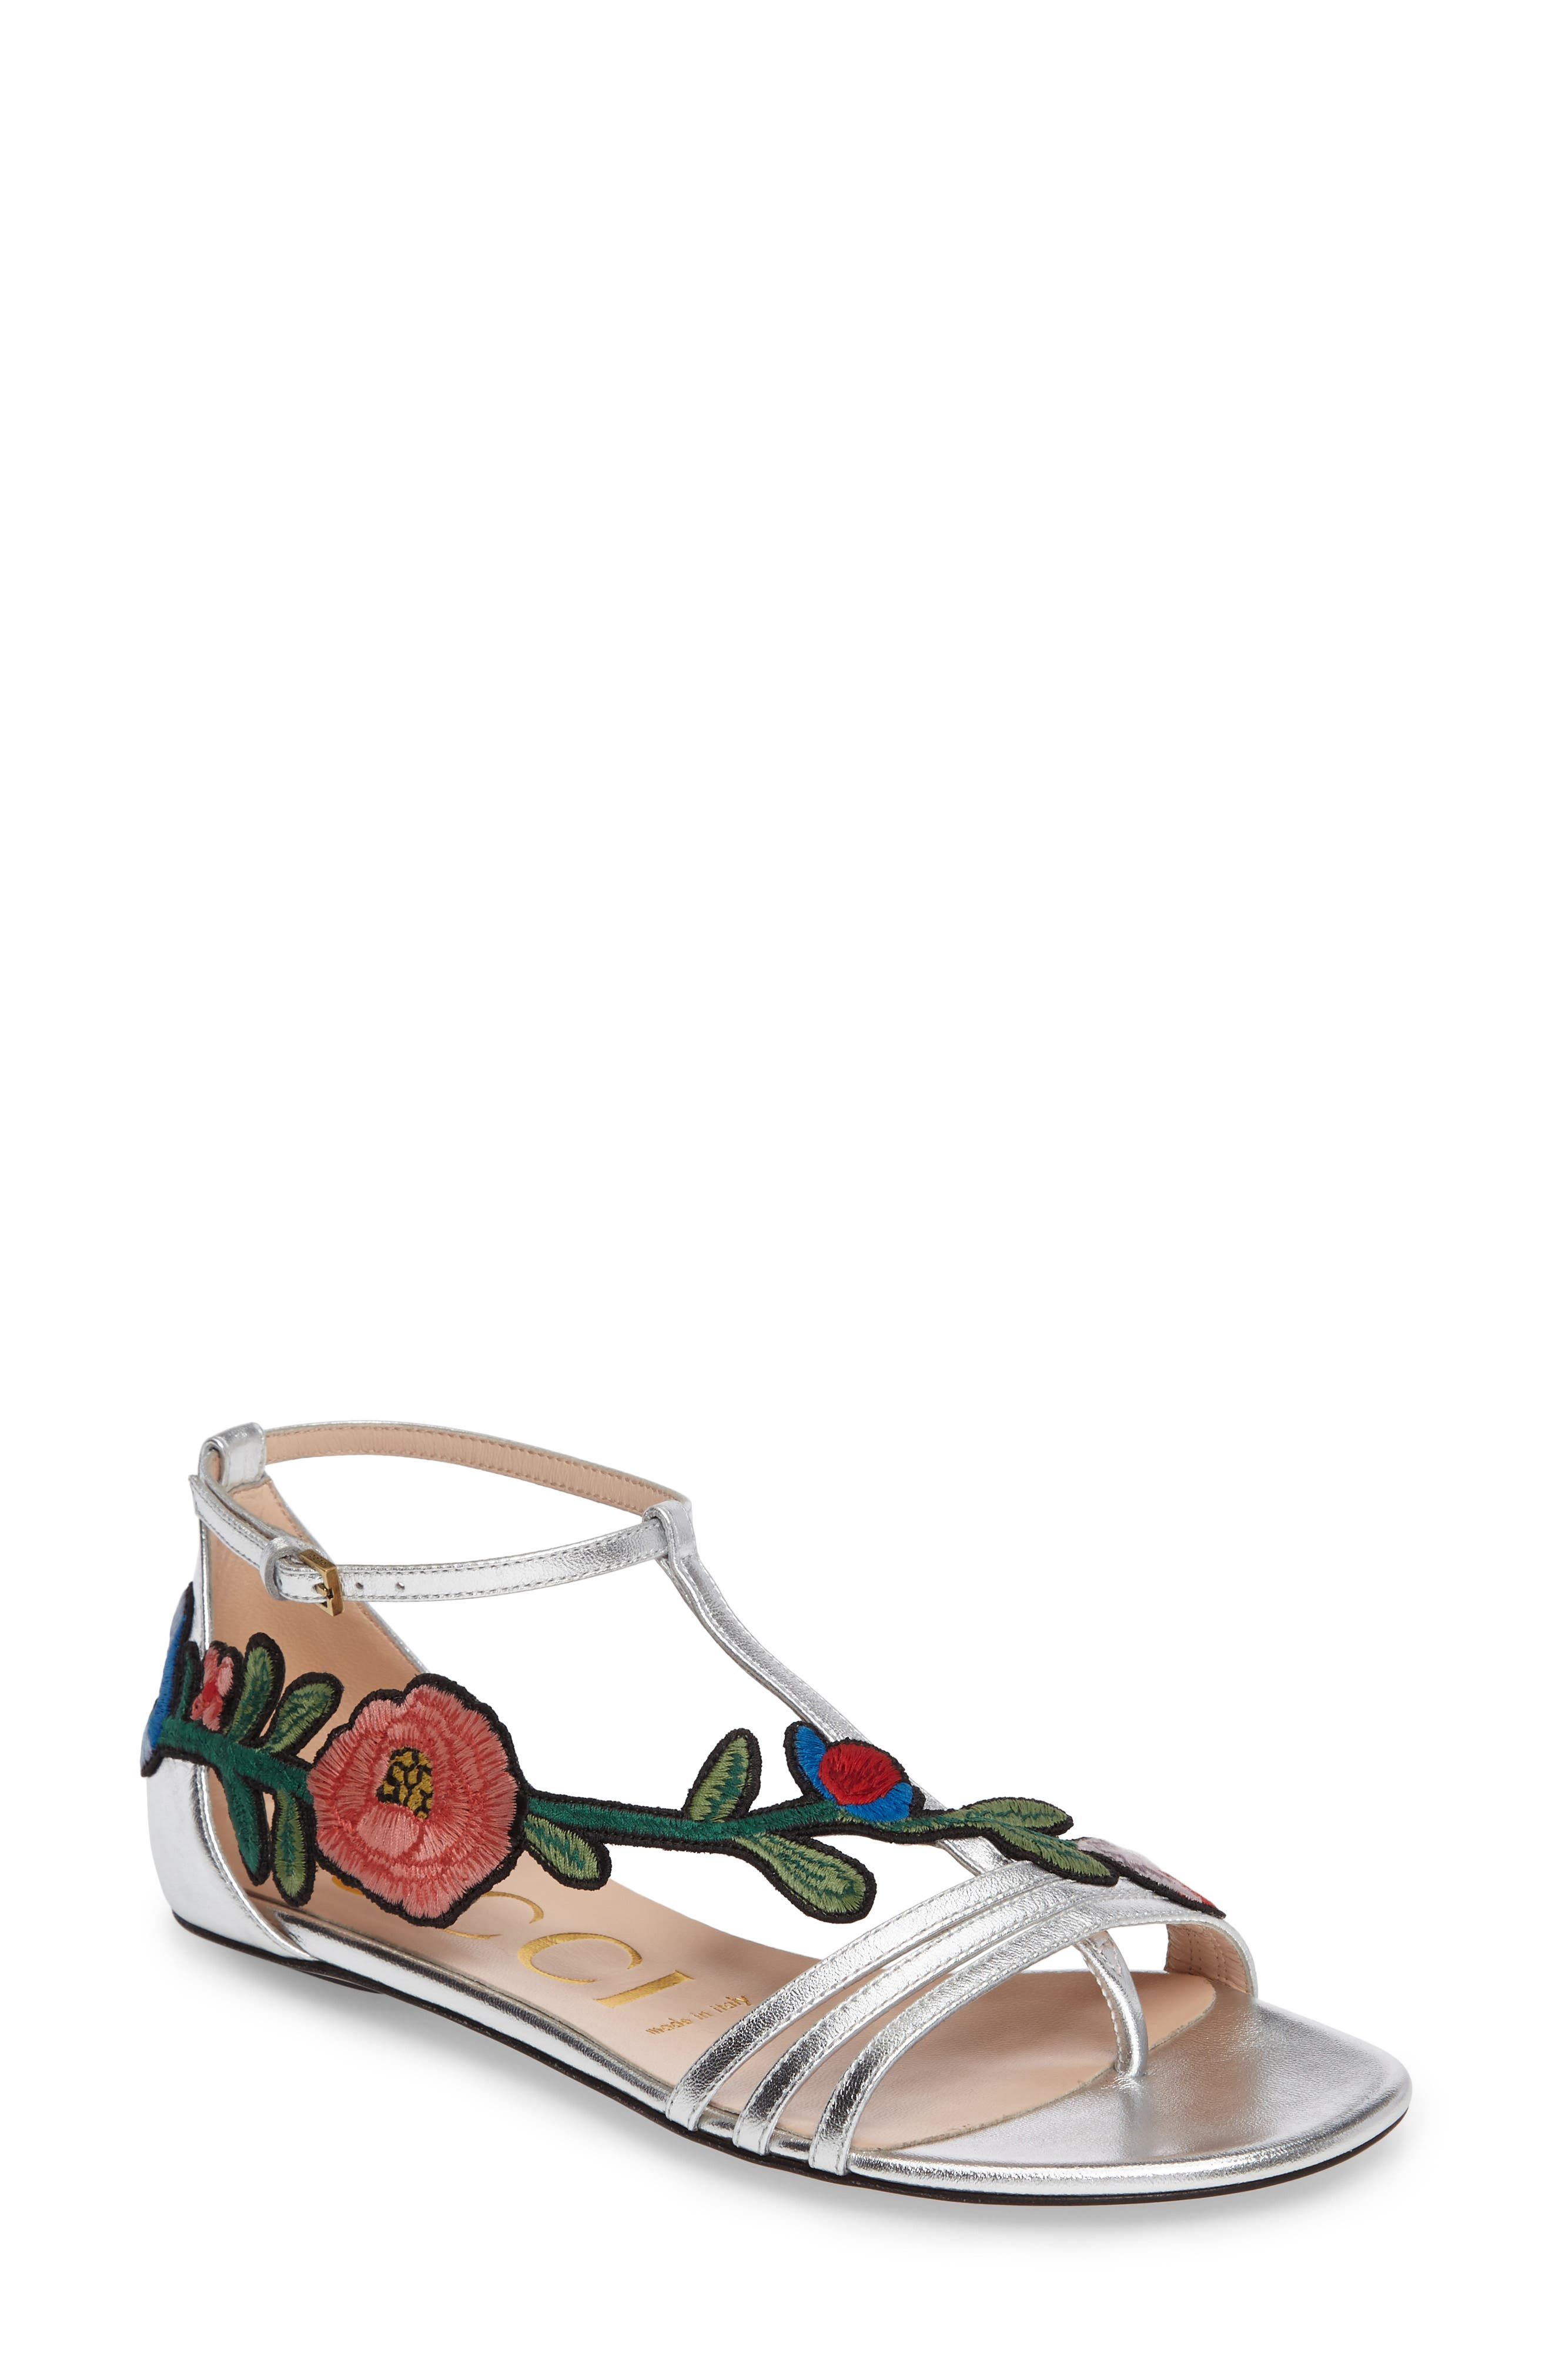 Gucci Ophelia Flower Sandal (Women)